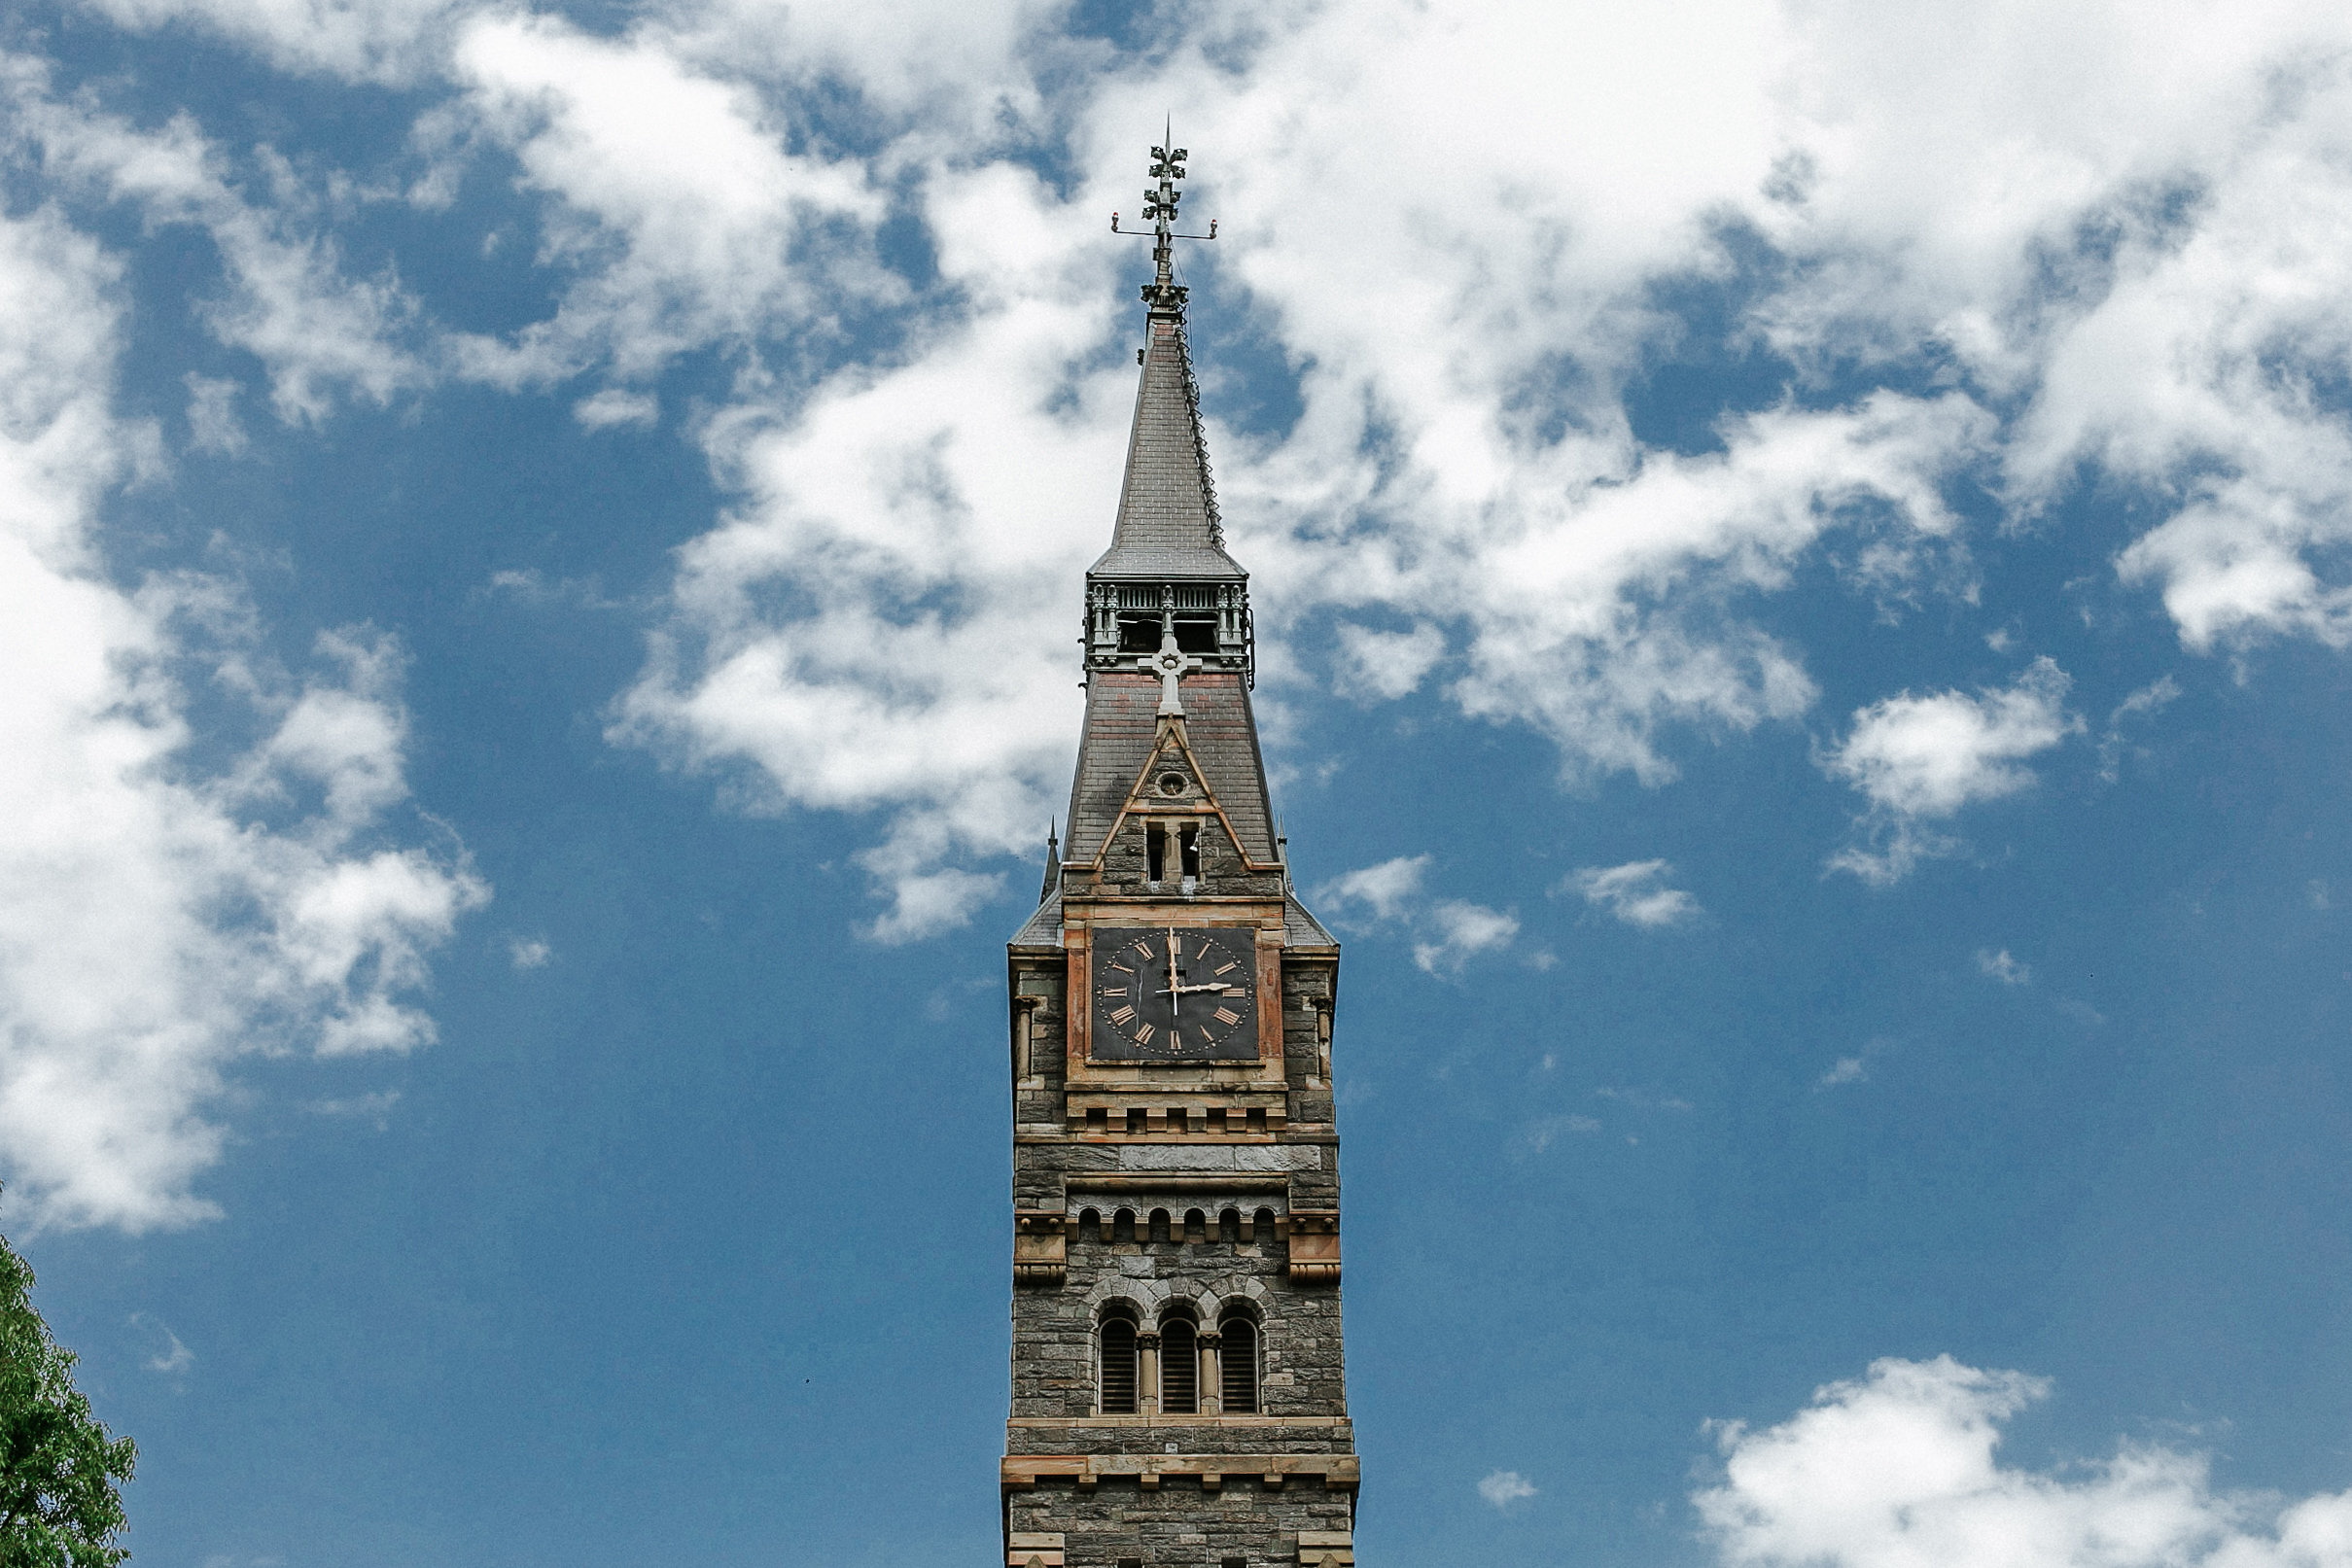 Church steeple against cloudy blue sky